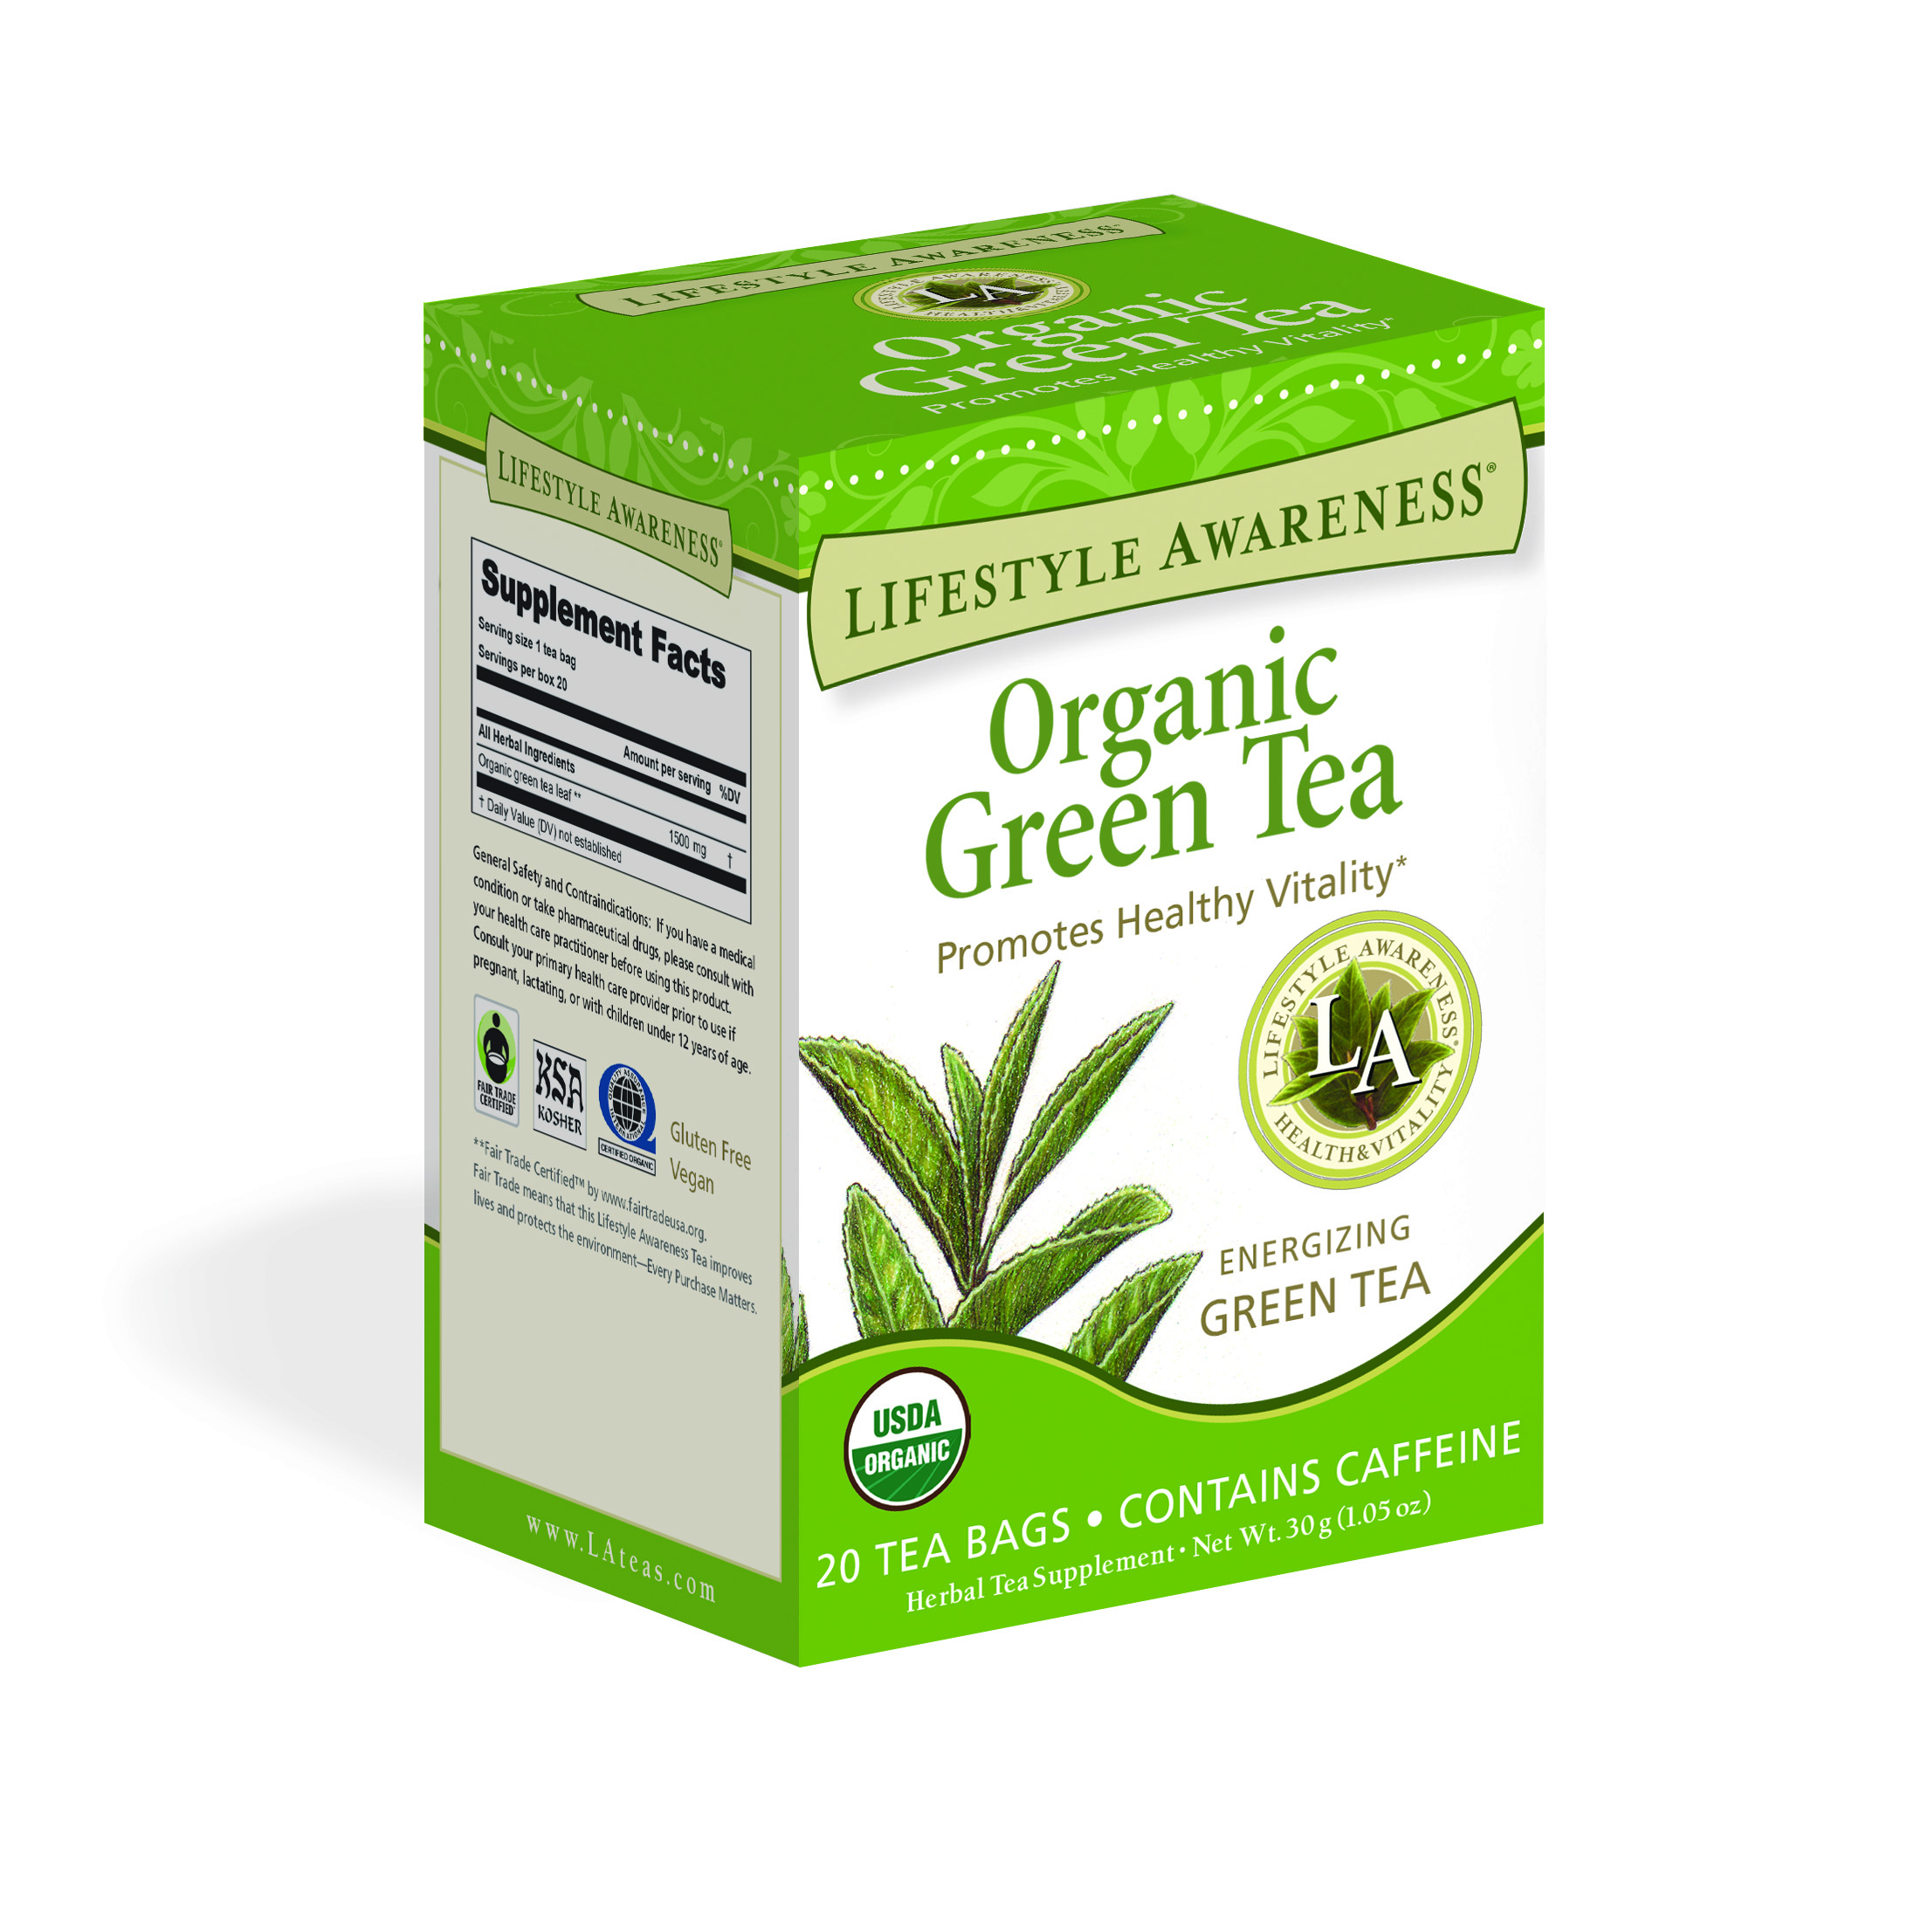 Lifestyle Awareness Organic Green Tea, Contains Caffeine, 20 Tea Bags, Pack of 6